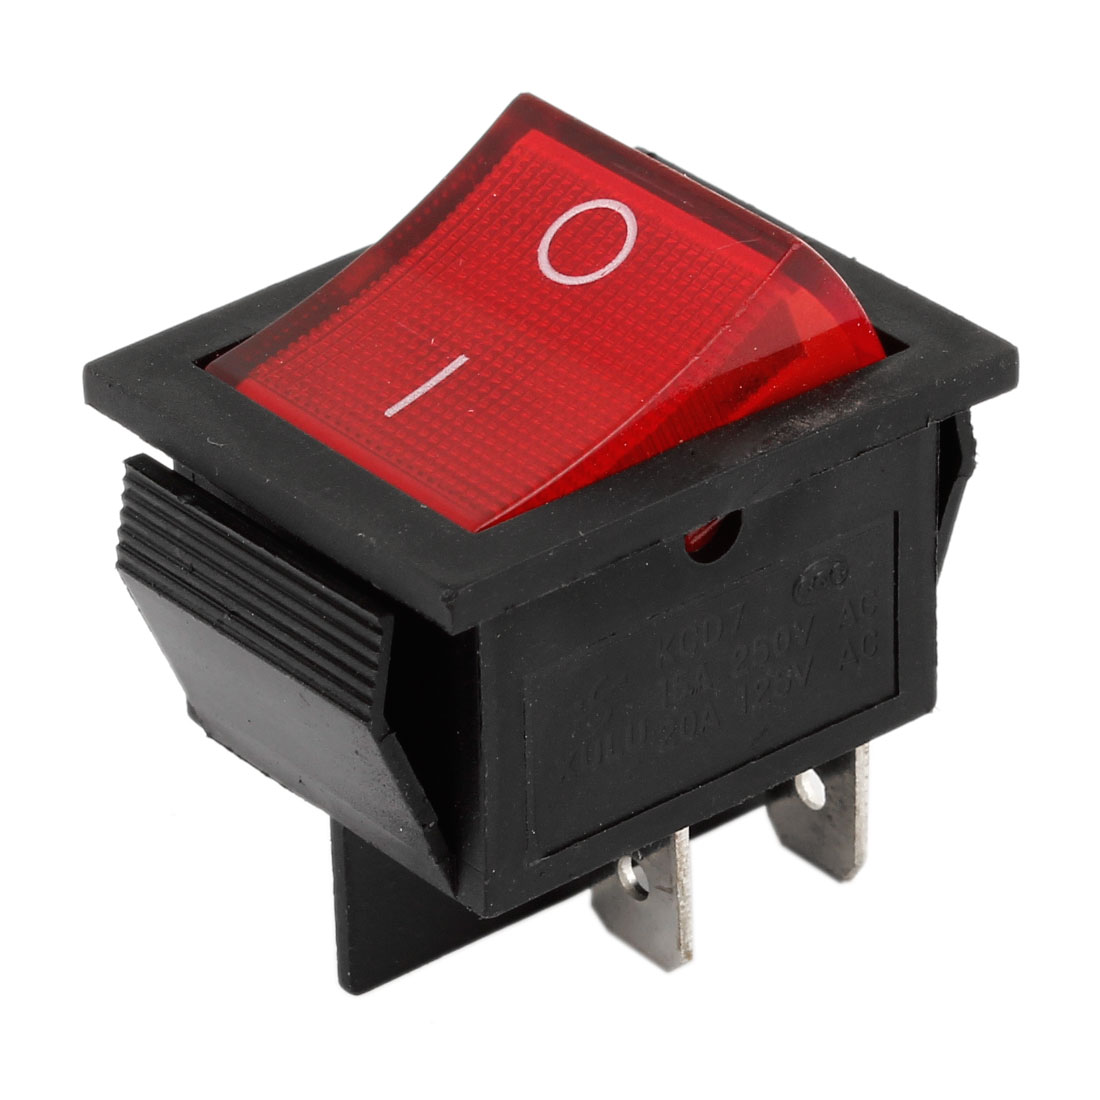 AC 250V 15A 125V 20A 4 Pins DPST I/O 2 Position Red Light Panel Mounted Snap in Boat Rocker Switch